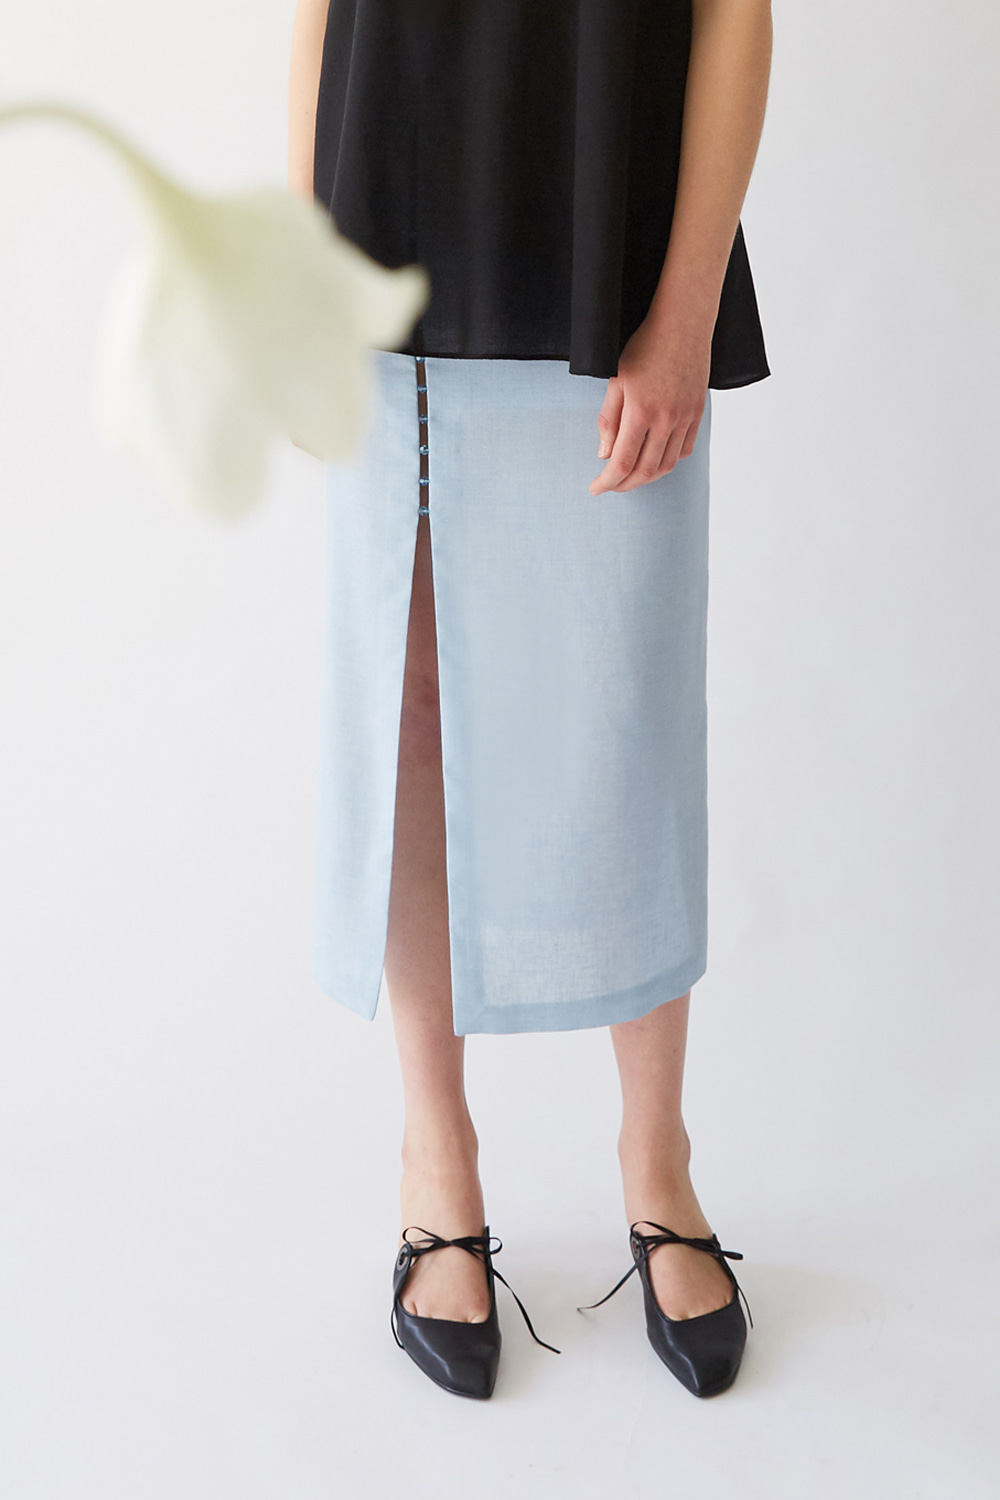 SS19 BEADED SLIT LONG SKIRT